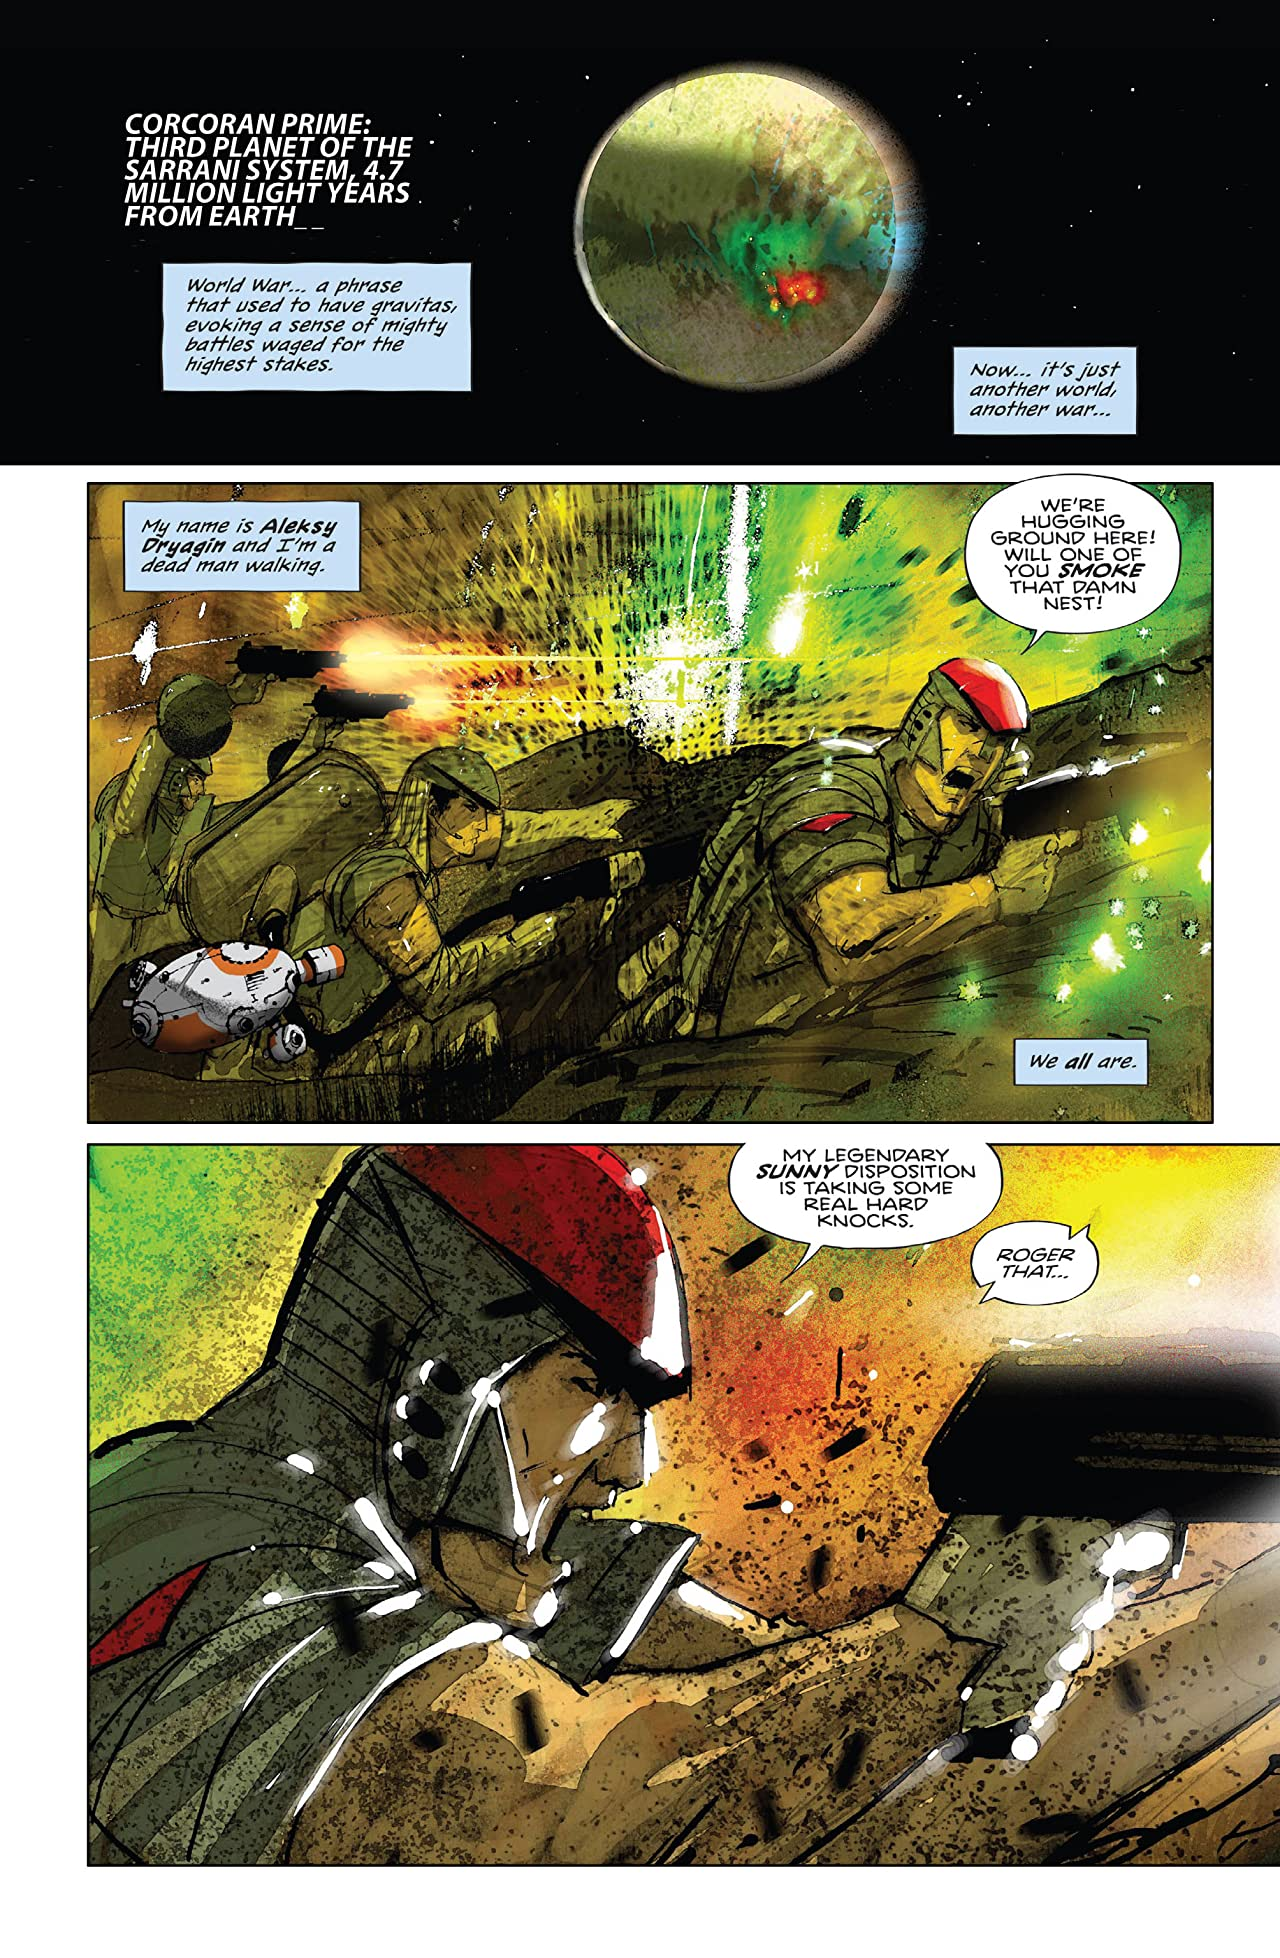 To The Death #1: Another World, Another War